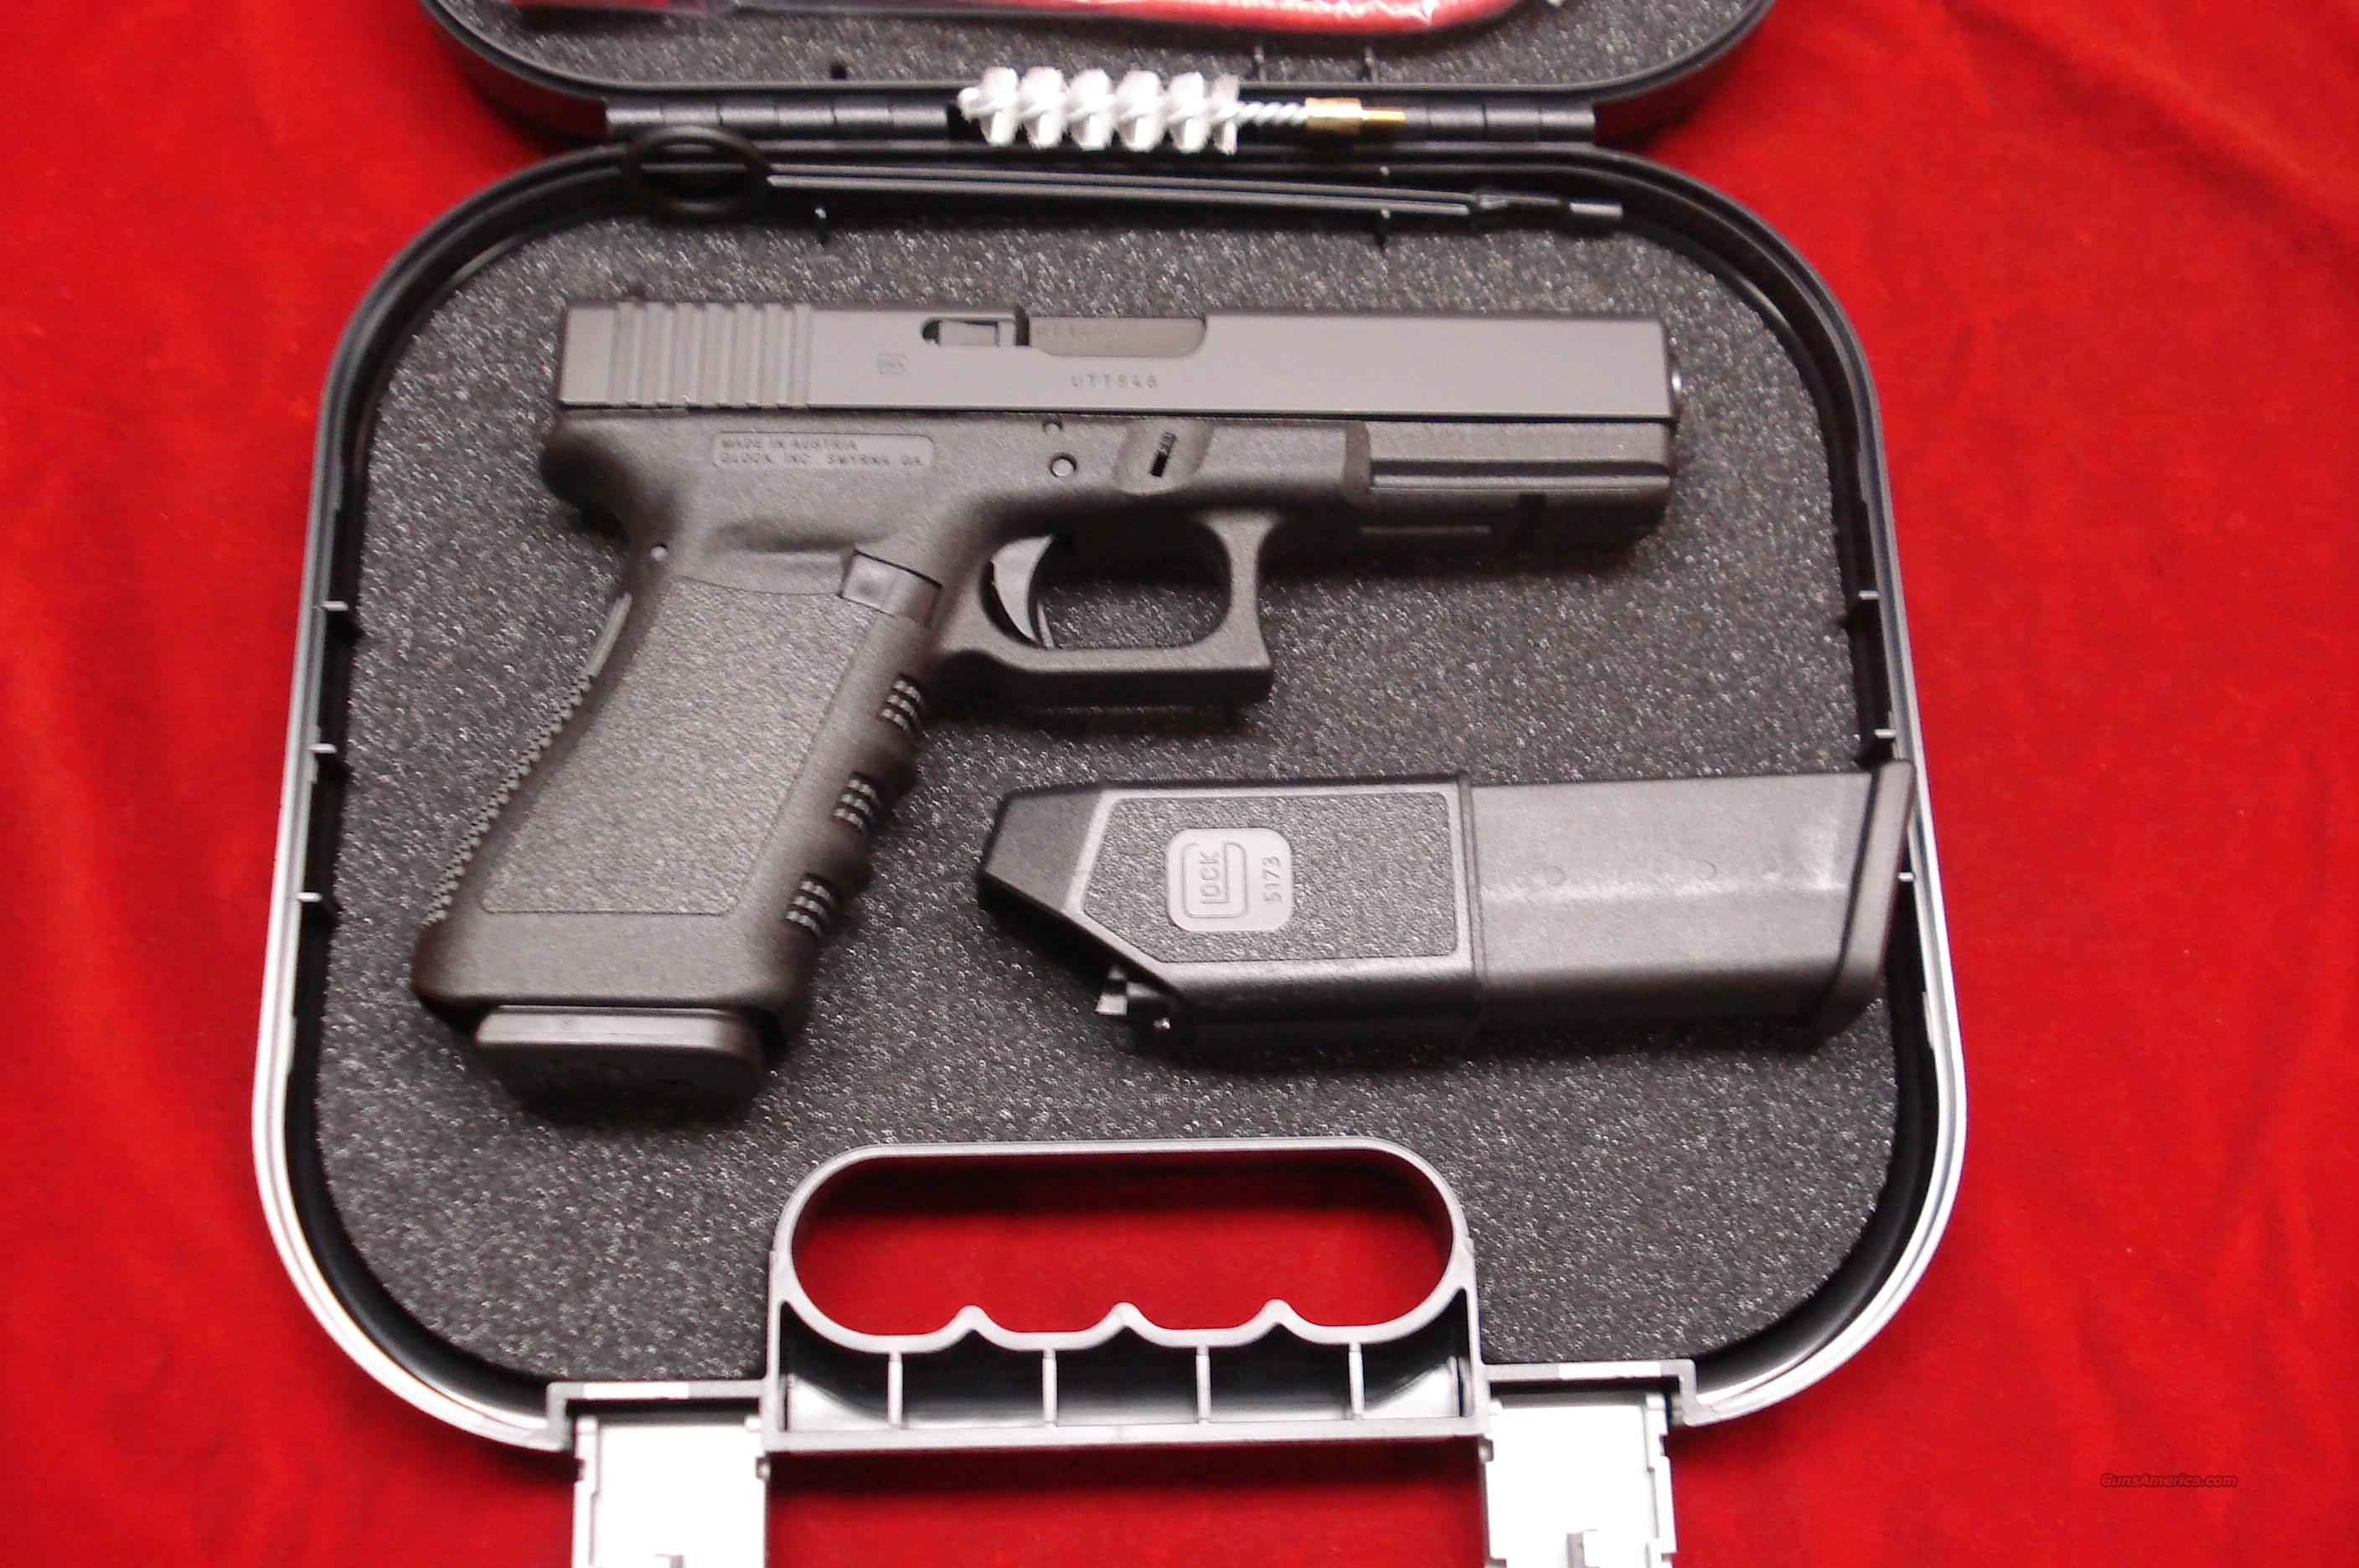 GLOCK MODEL 21 45ACP NEW  Guns > Pistols > Glock Pistols > 20/21